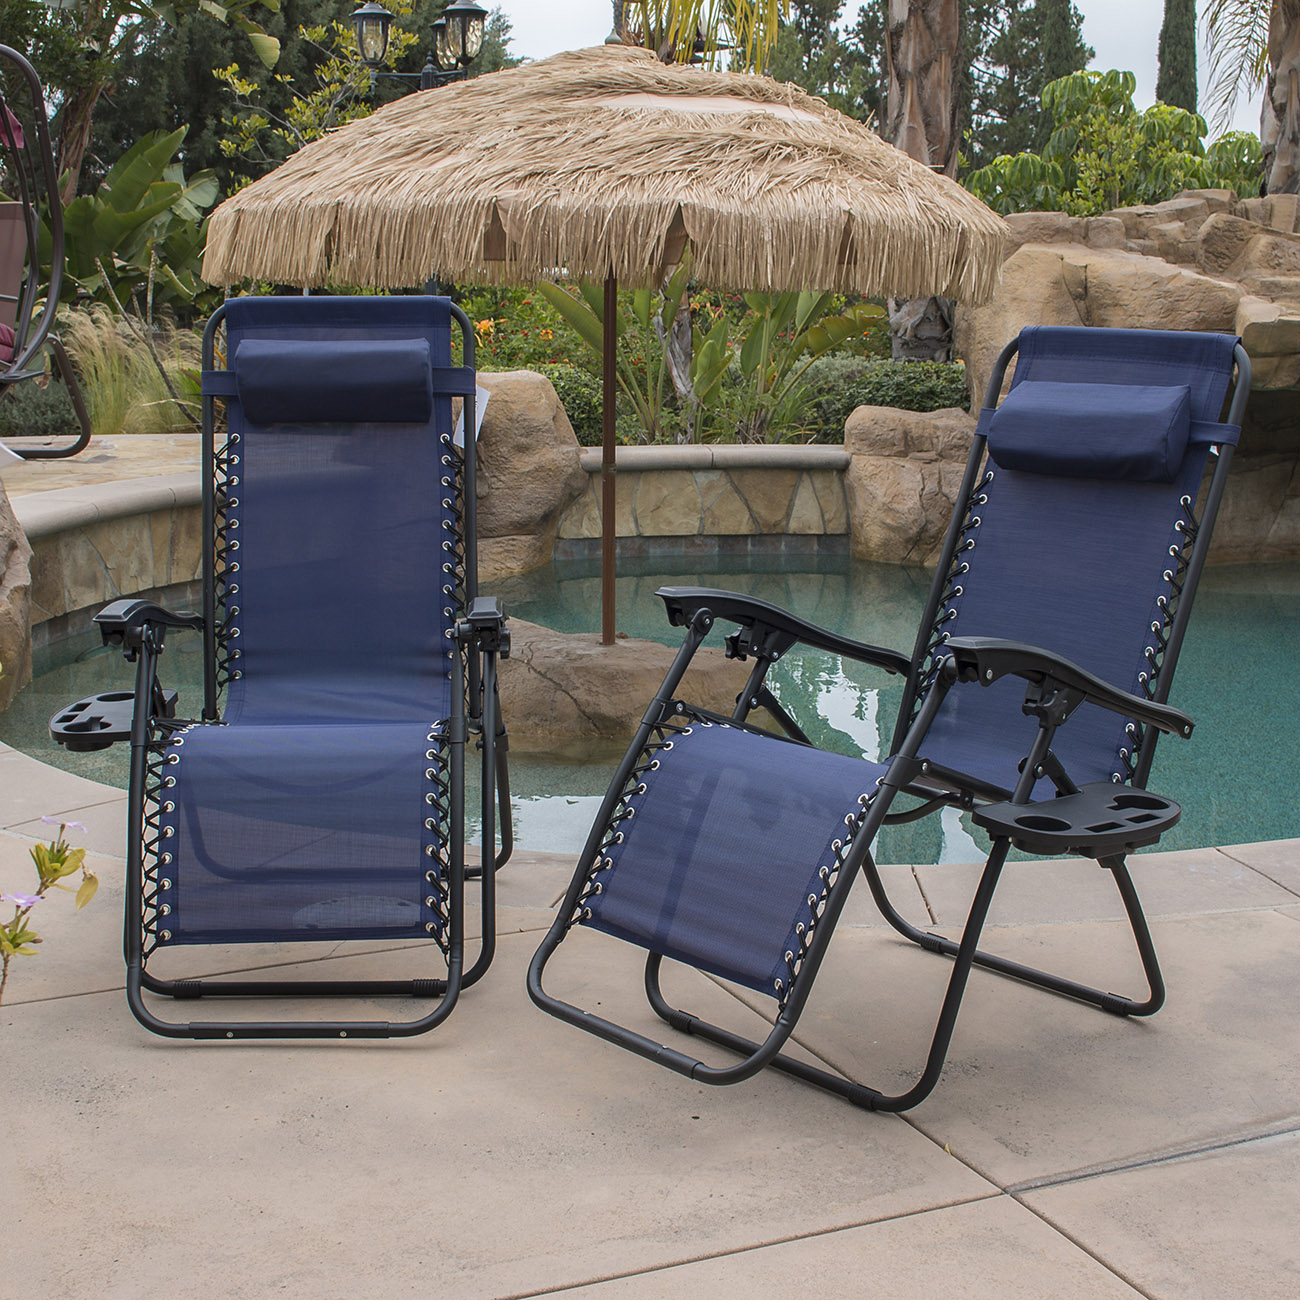 Belleze 2-Pack Zero Gravity Chairs Patio Lounge +Cup Holder/Utility Tray (Blue)